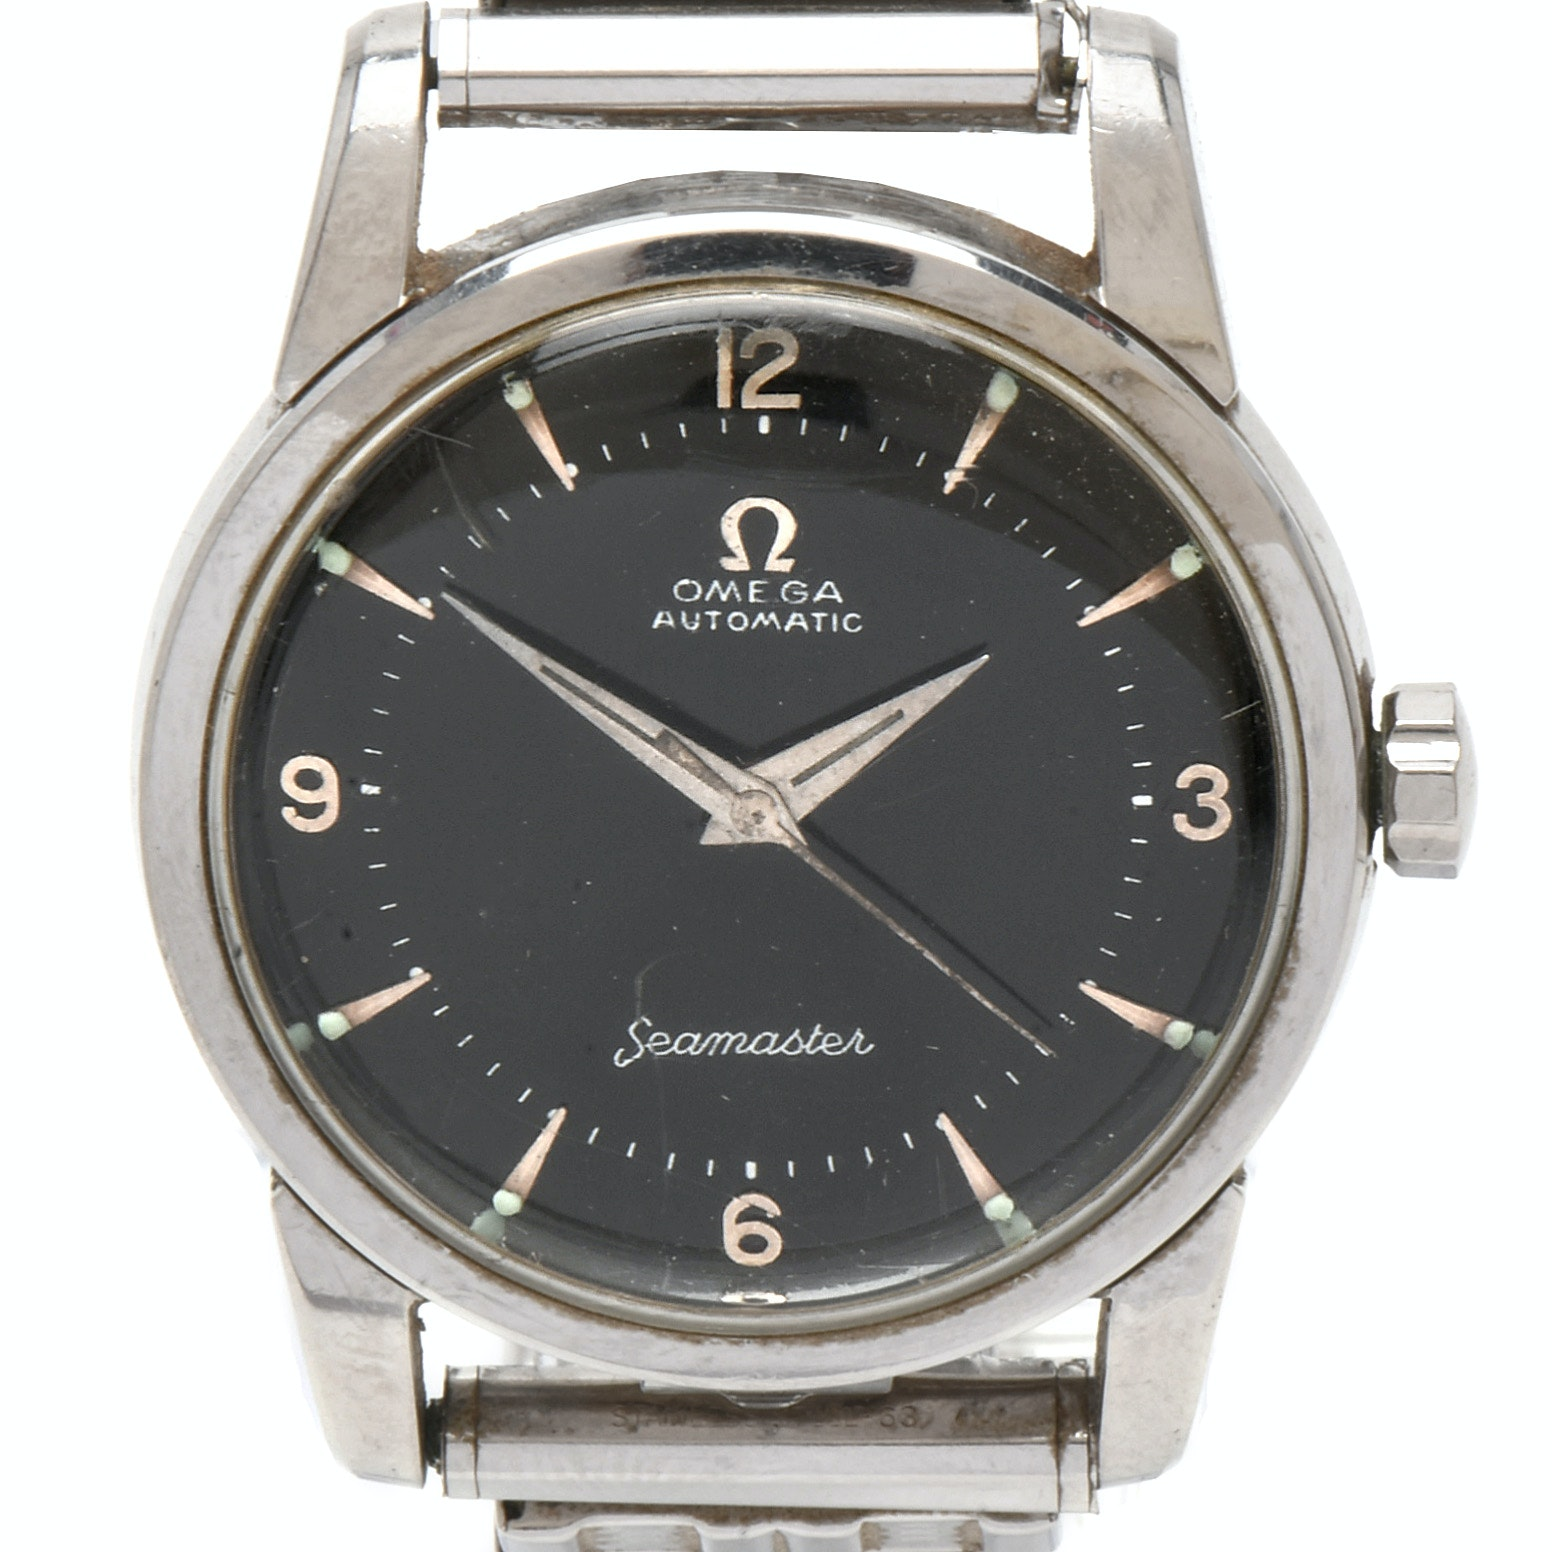 """Omega """"Automatic Seamaster""""  Stainless Steel Wristwatch, Circa 1955"""